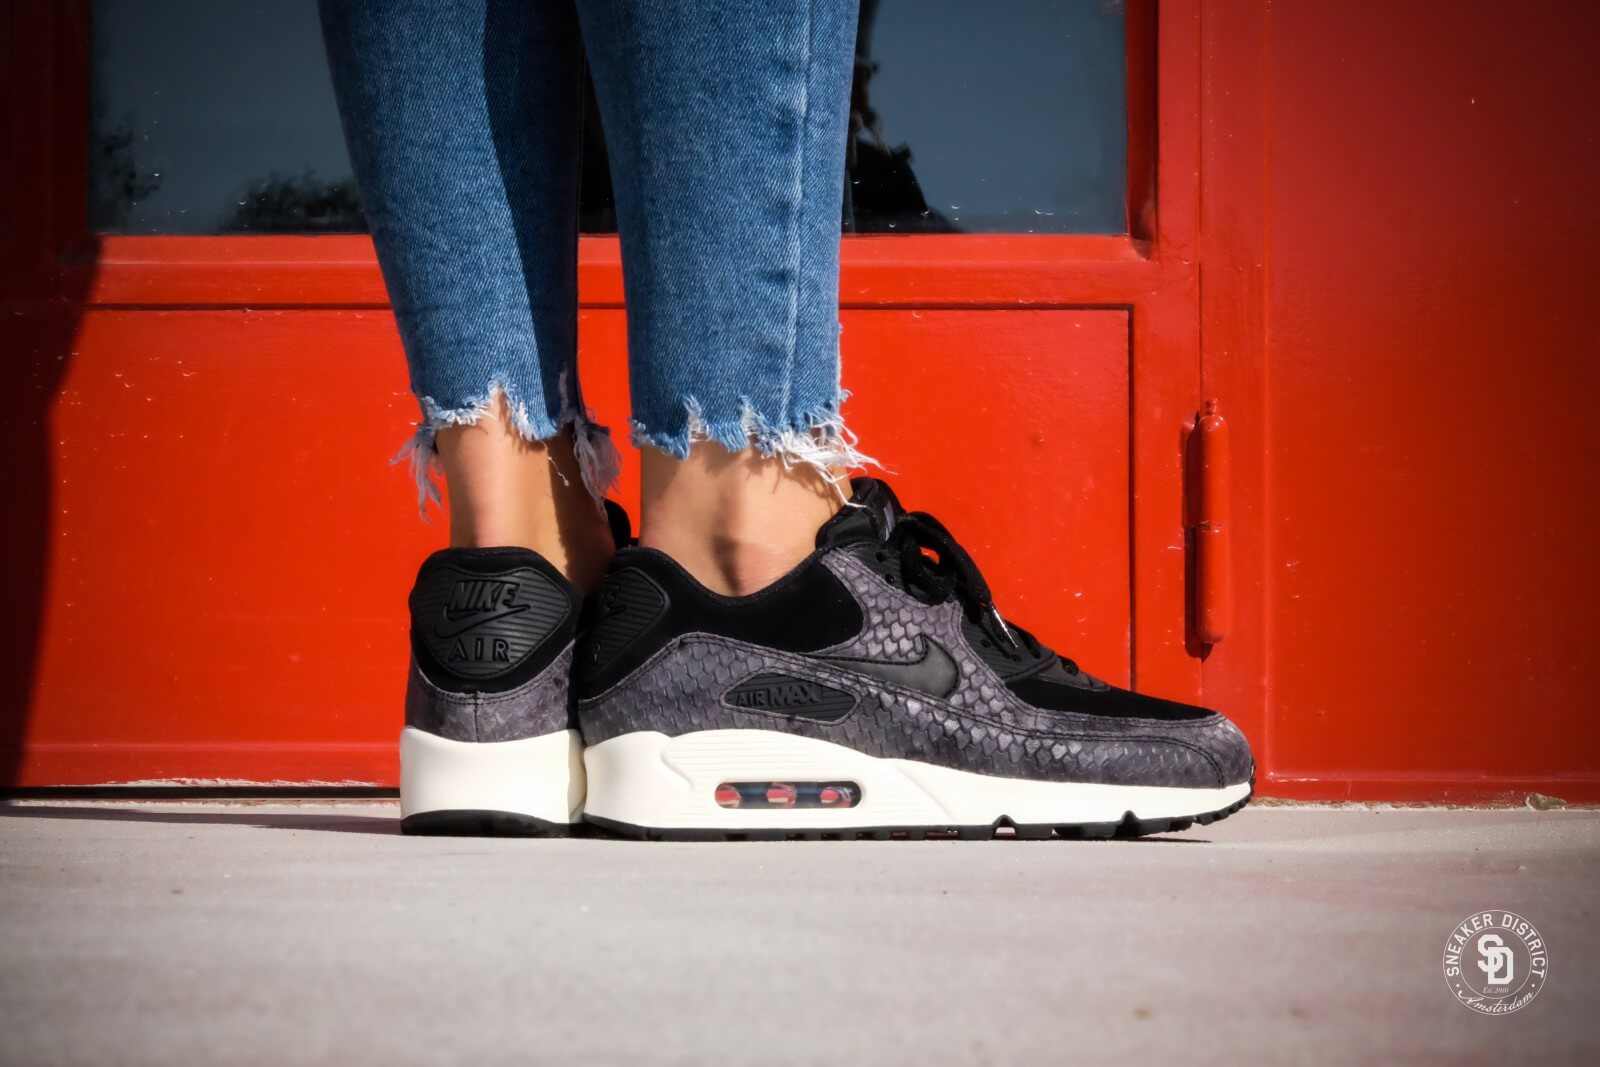 quality uk cheap sale really comfortable Nike WMNS Air Max 90 PRM Black/Sail-Dark Grey - 896497-005